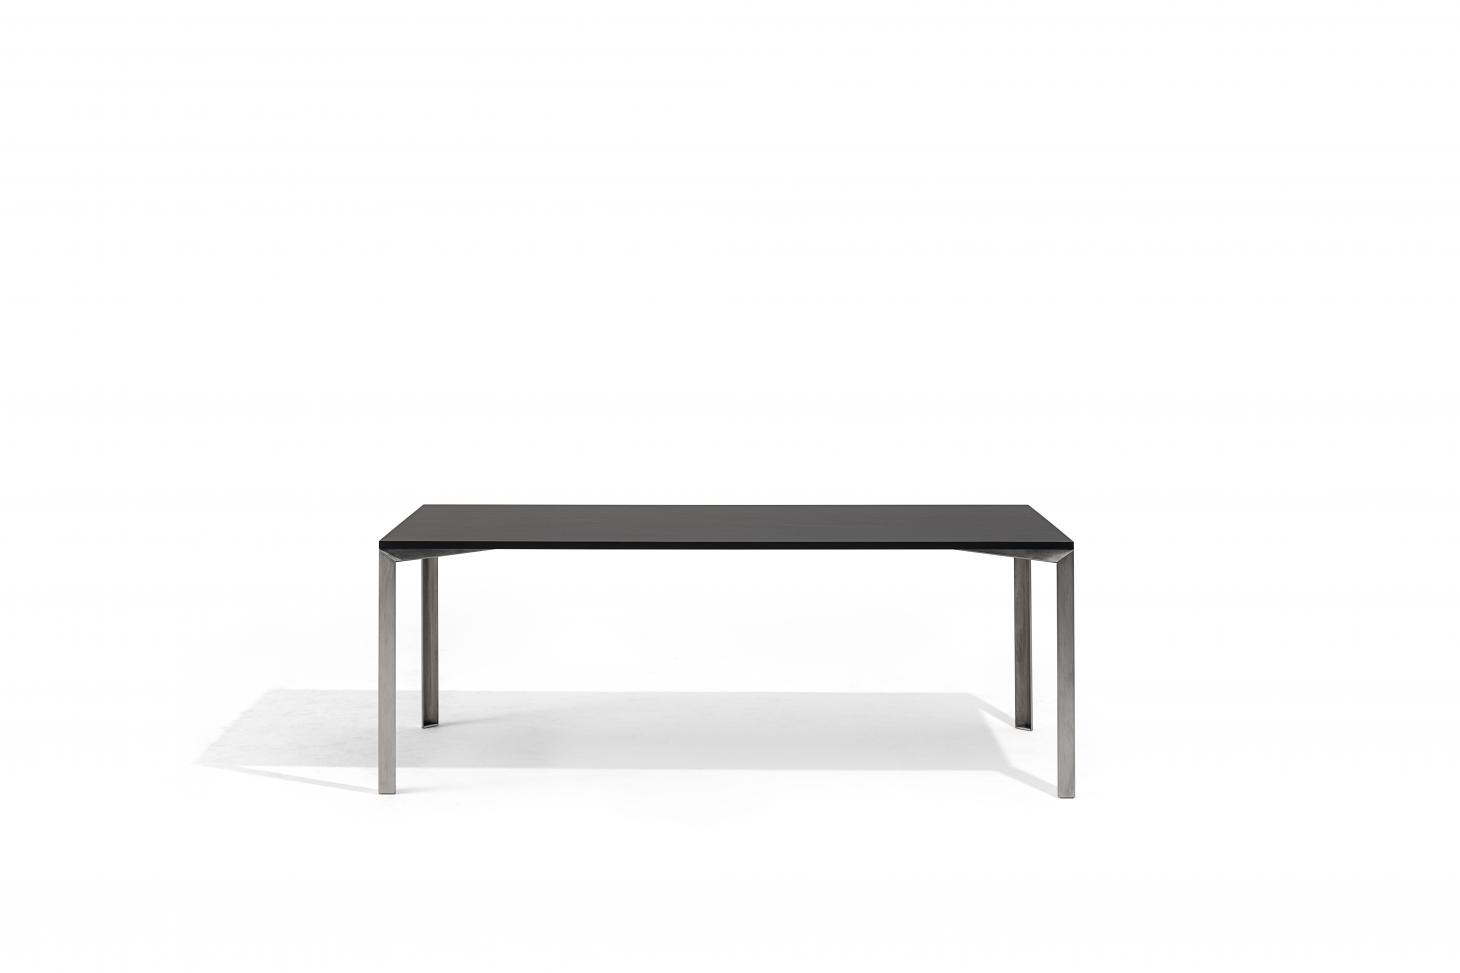 Long rectangular dining table with metal legs and slim black table top